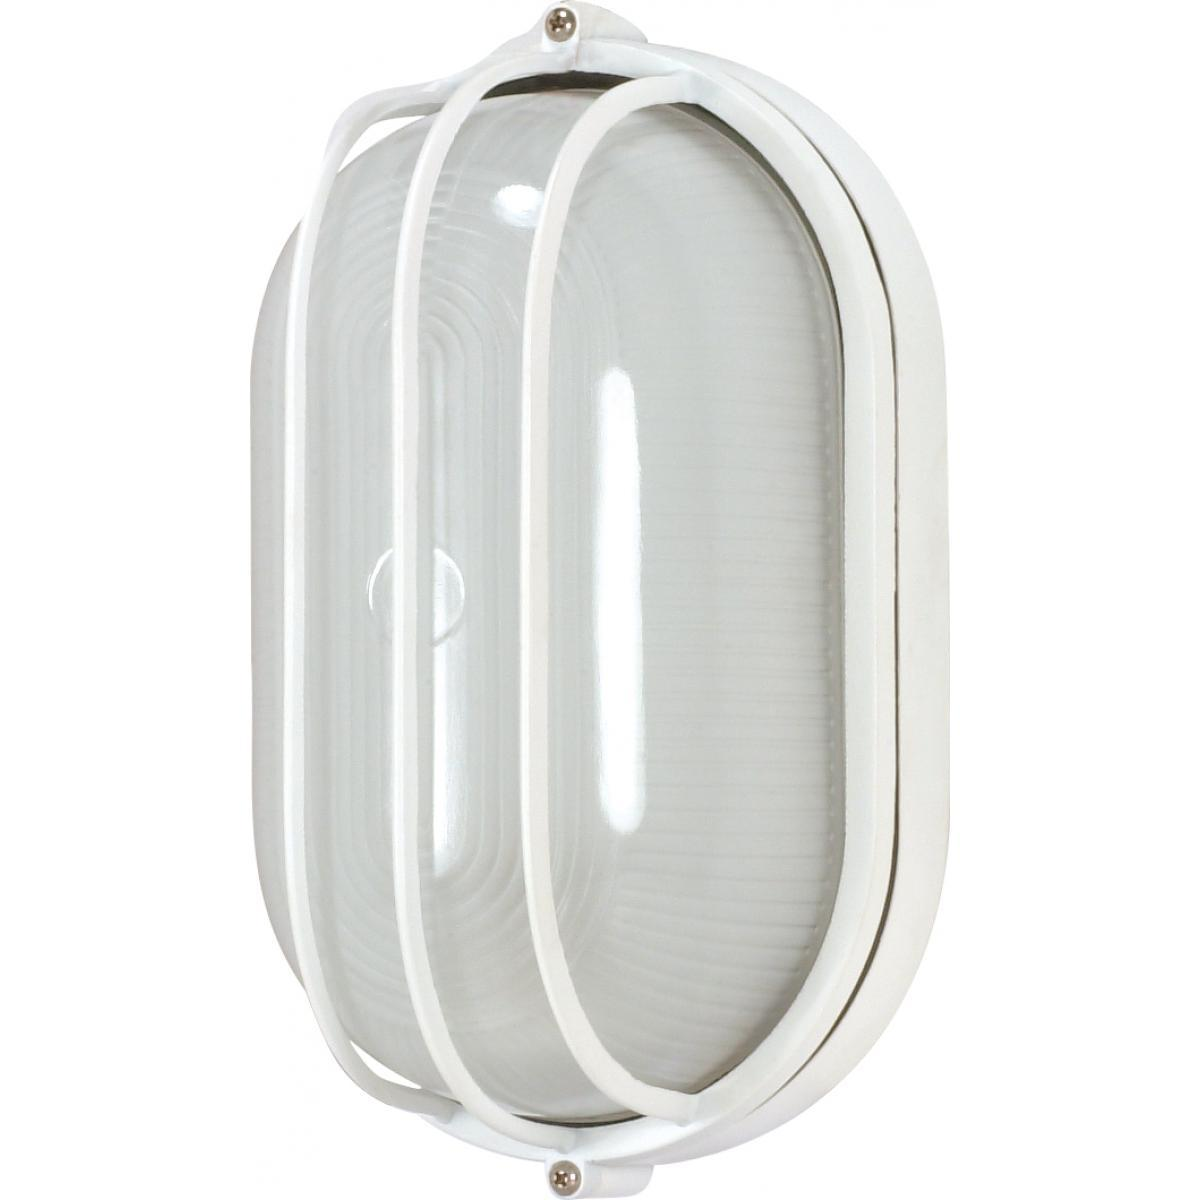 "Nuvo Lighting 1 Light 10"" Oval Cage Bulk Head Die Cast Bulk Head 60/524"